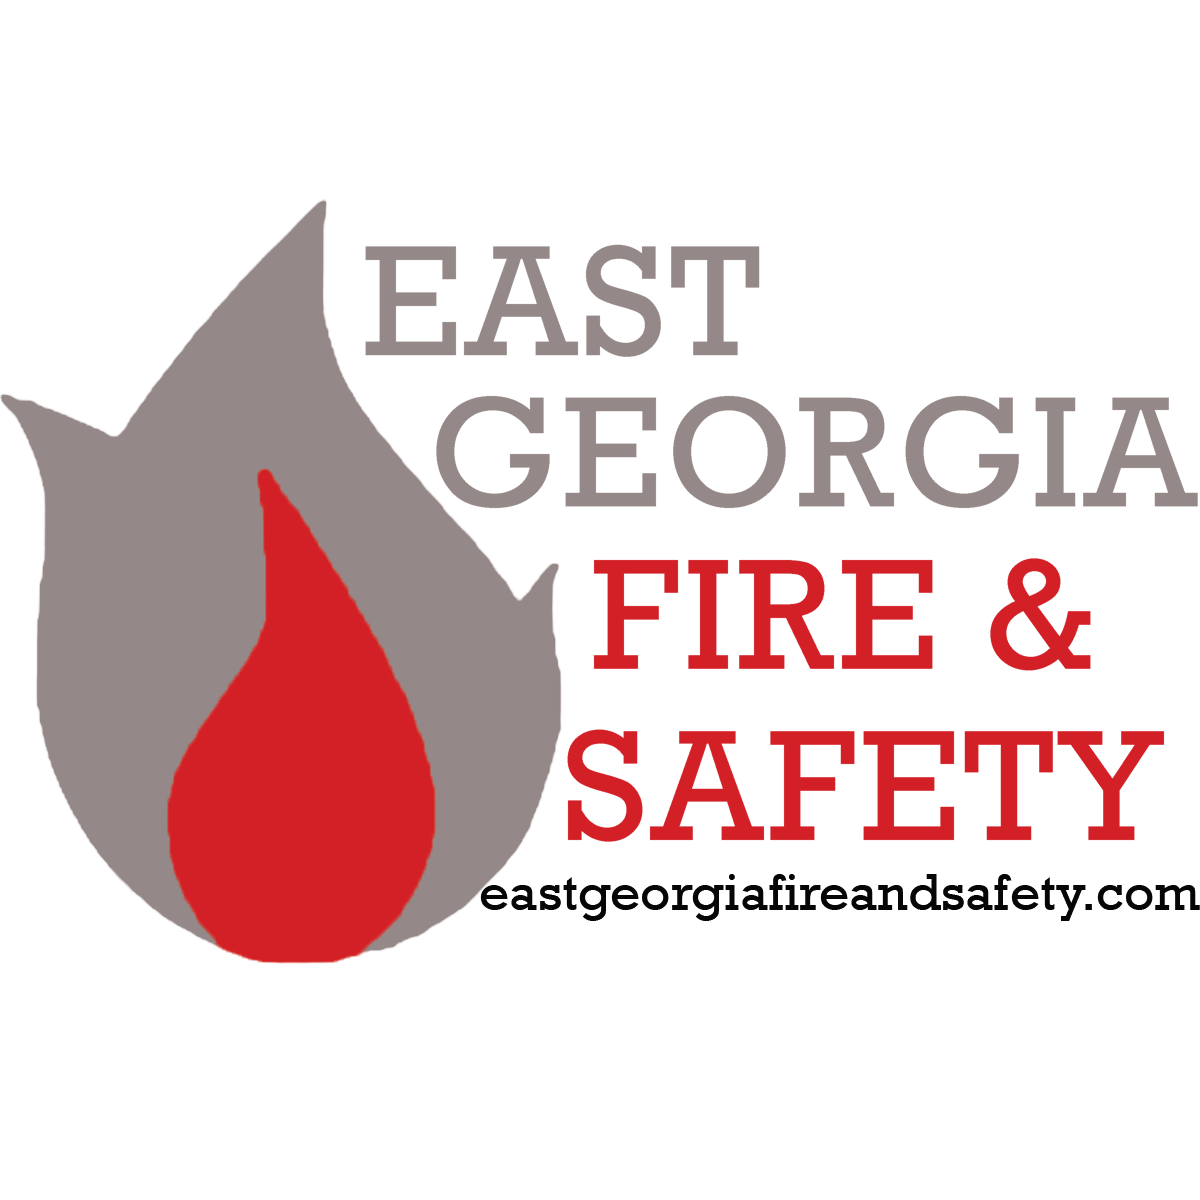 East Georgia Fire & Safety